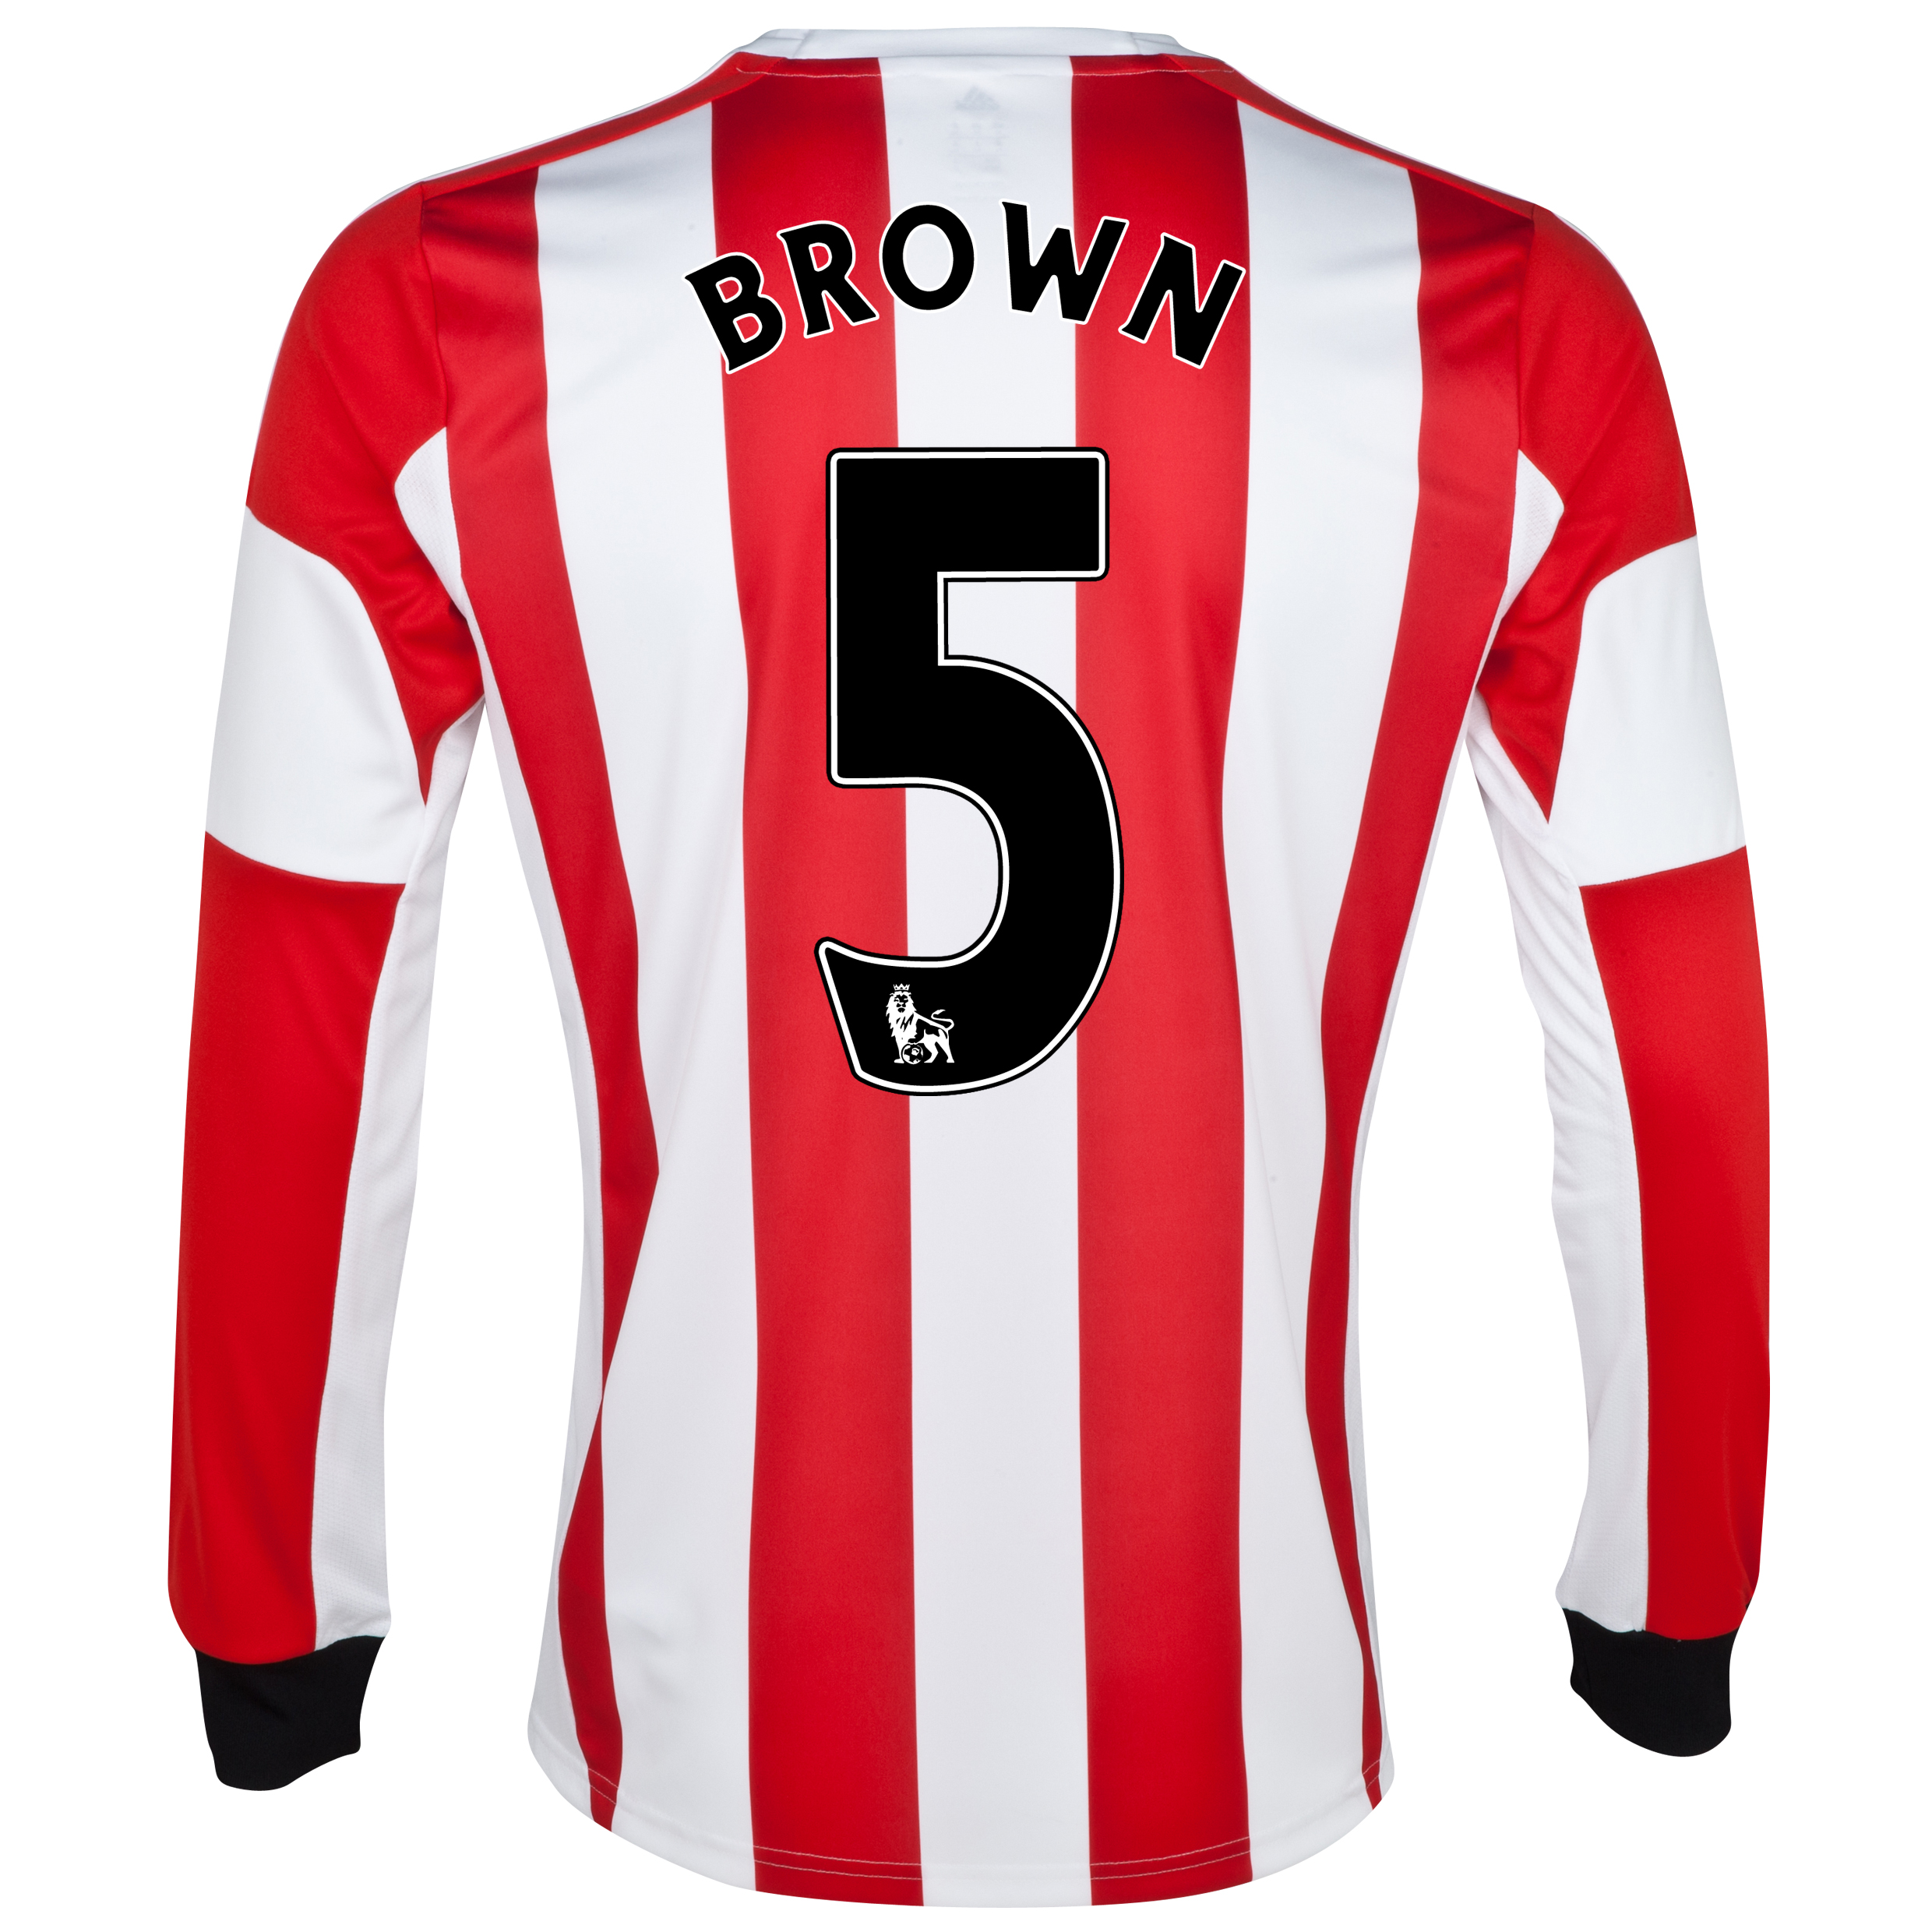 Sunderland Home Shirt 2013/14 - Long Sleeved - Junior with Brown 5 printing